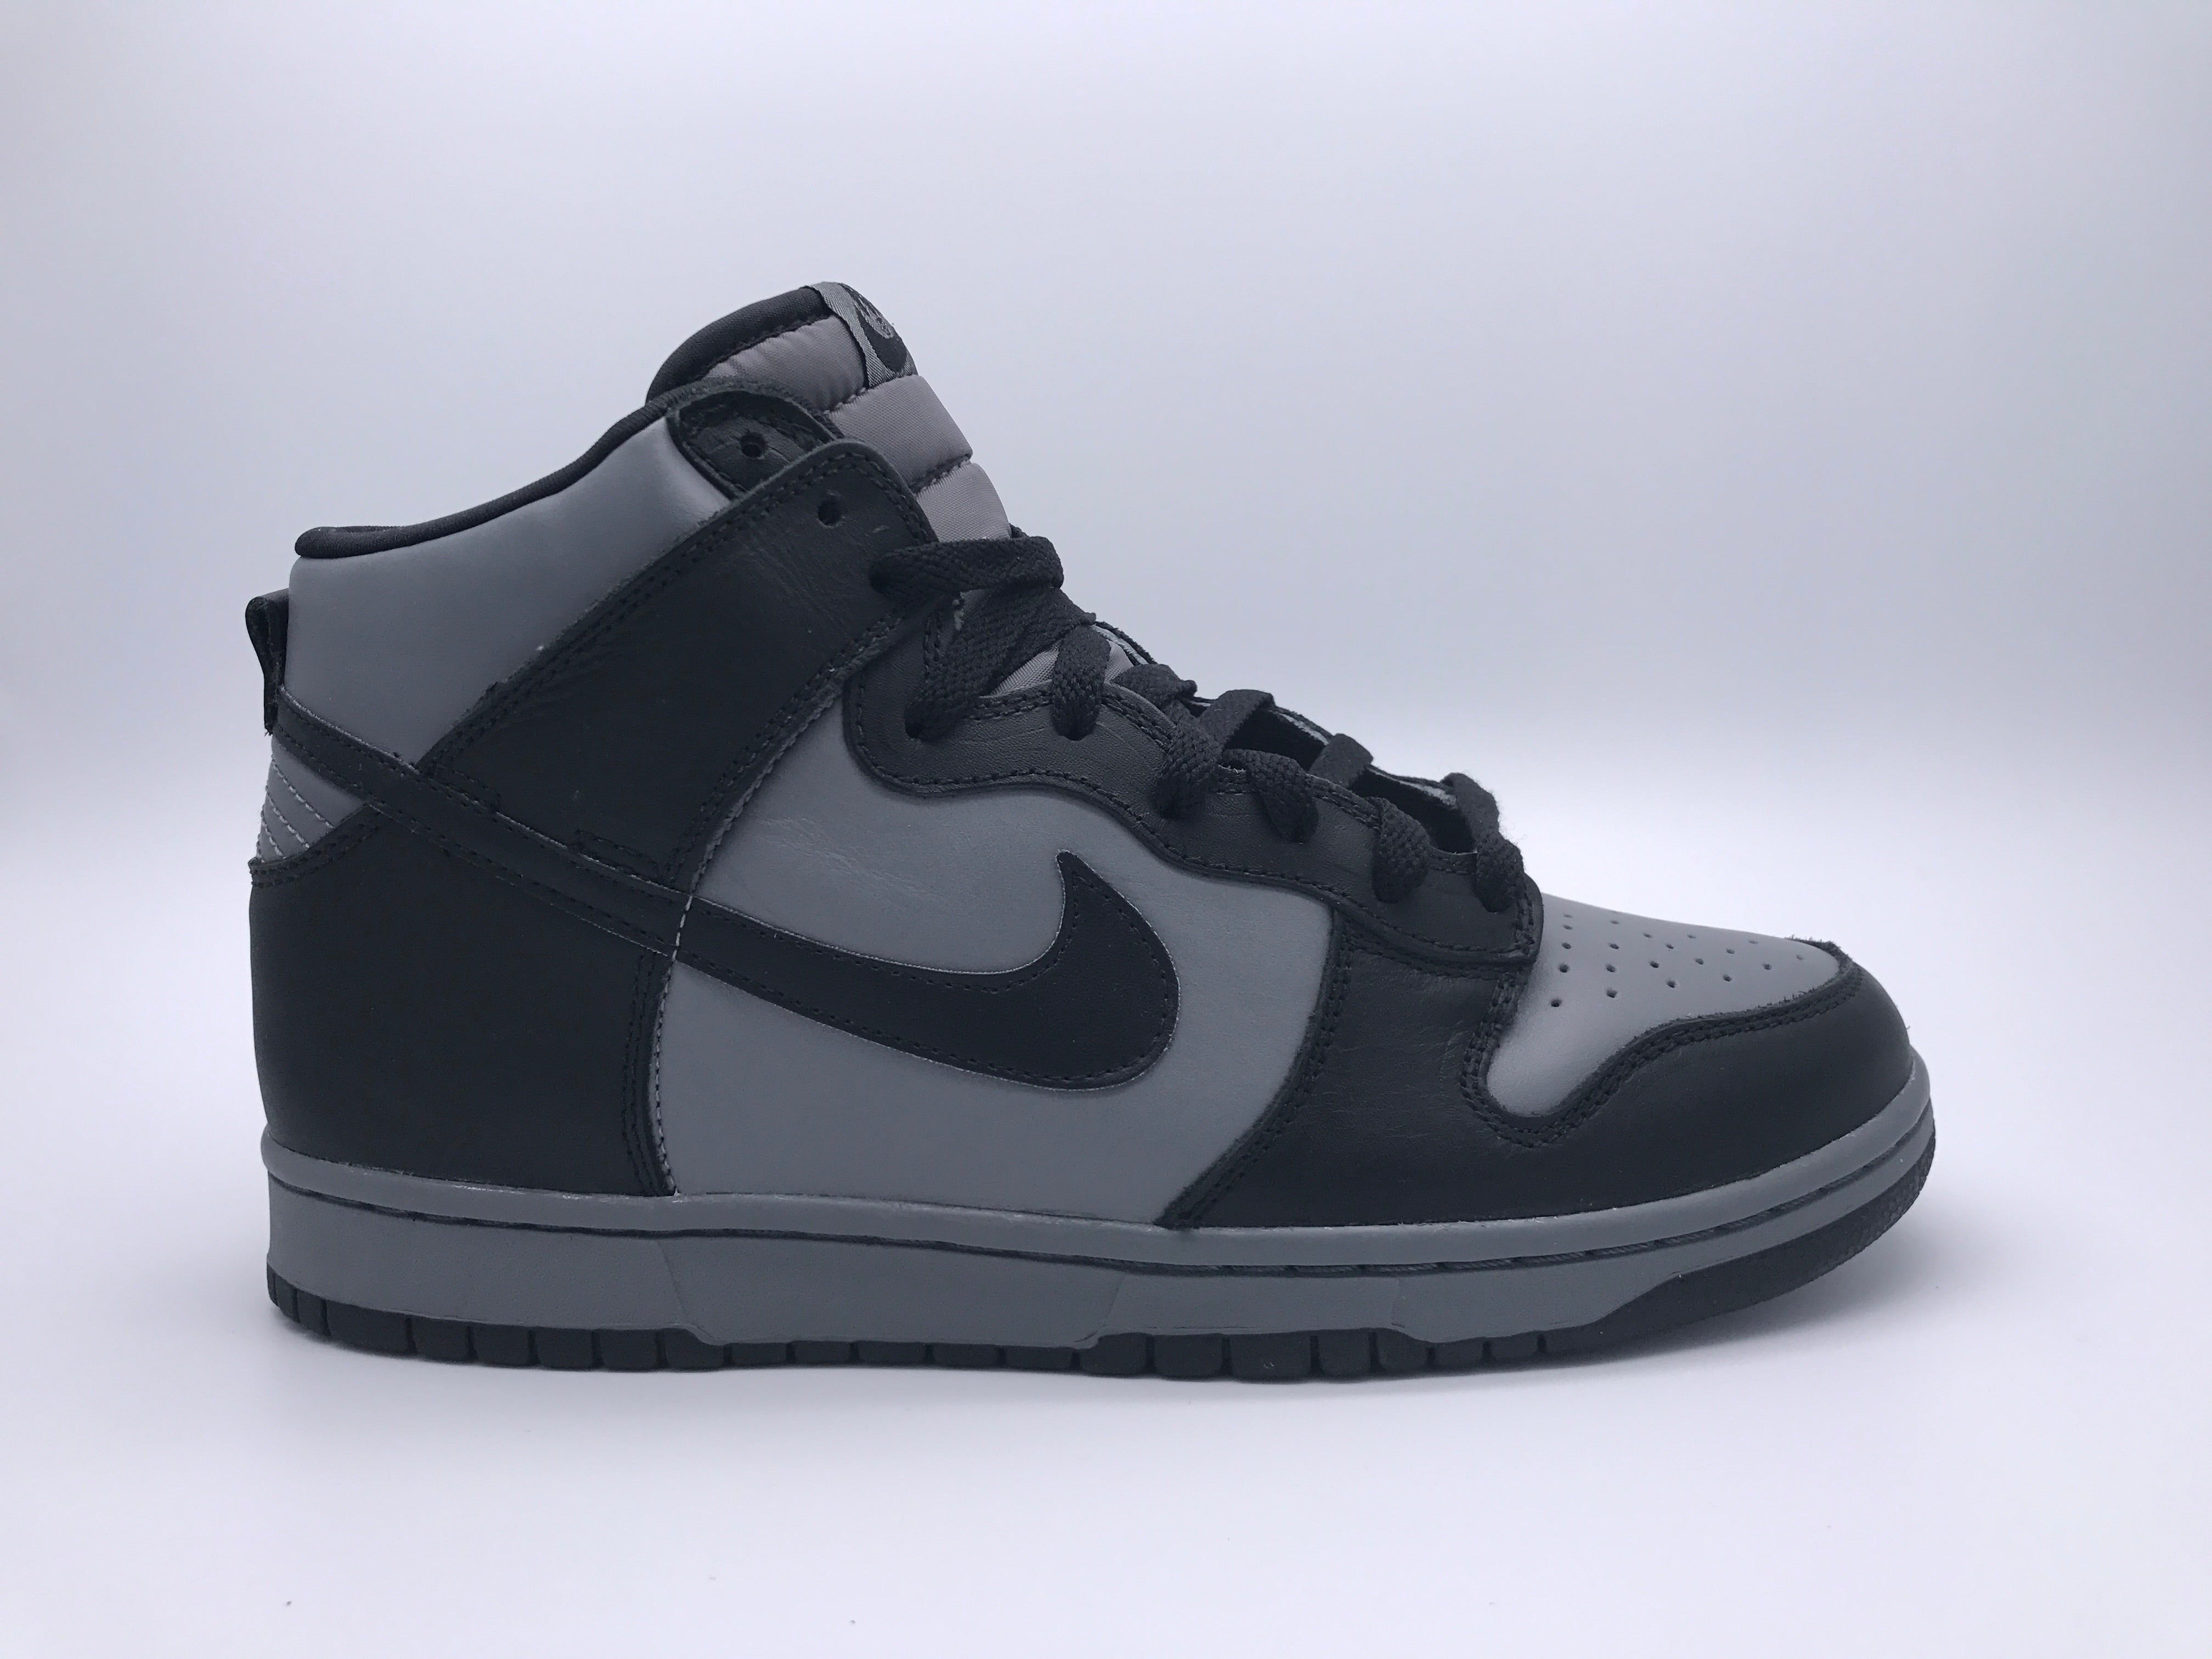 Black And White High Top Nike Dunks | International College